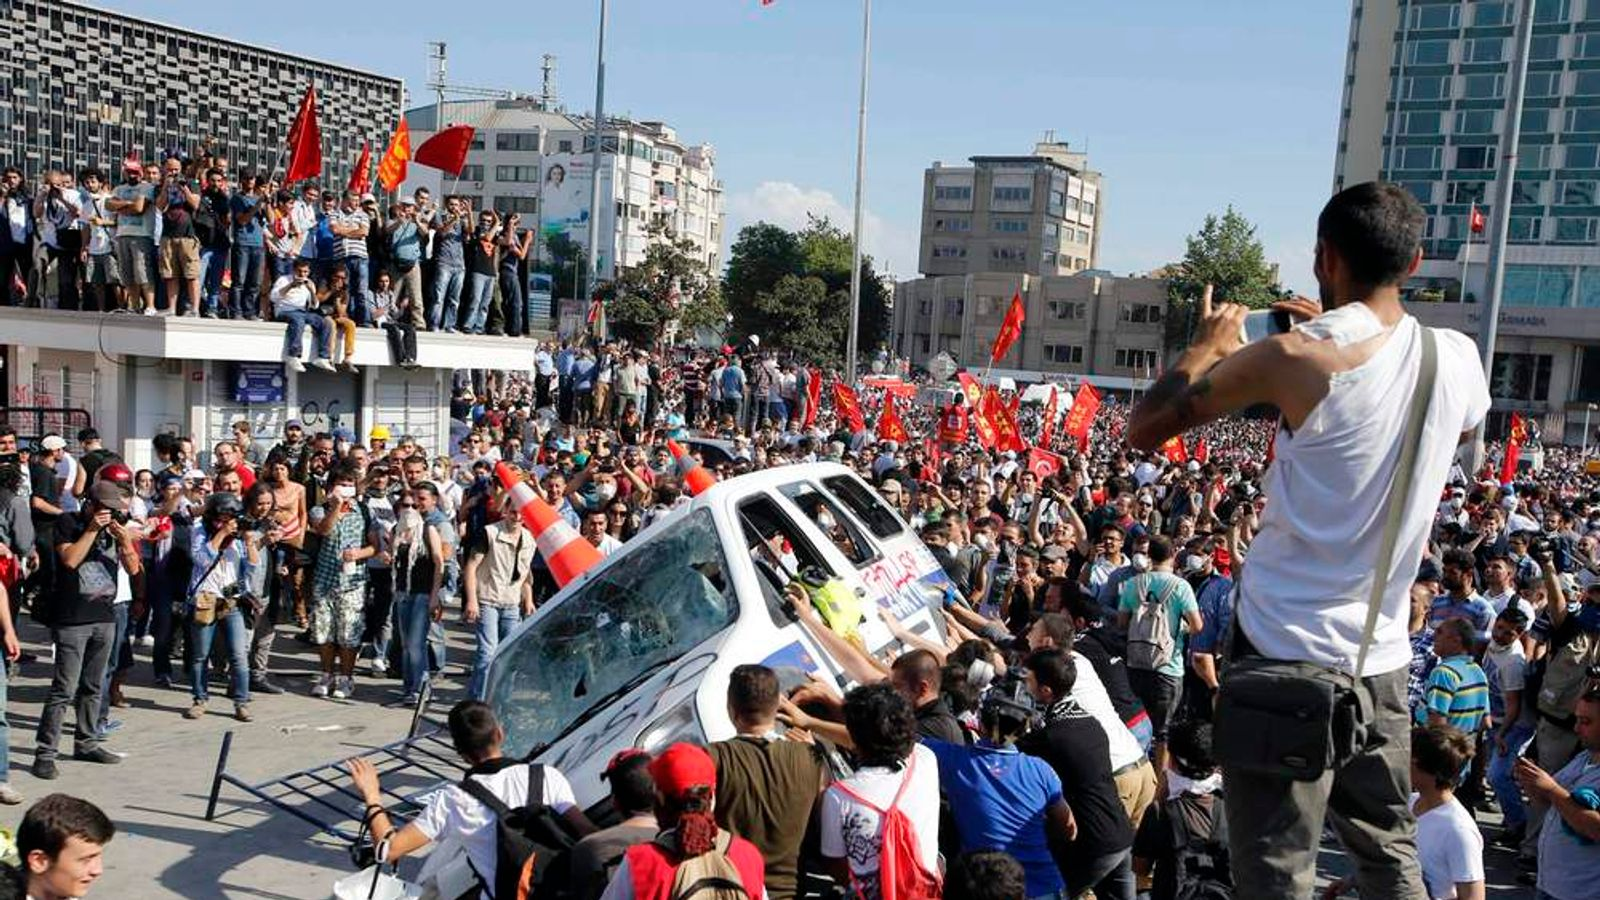 Protesters prepare to roll a police car over during an anti-government protest at Taksim Square